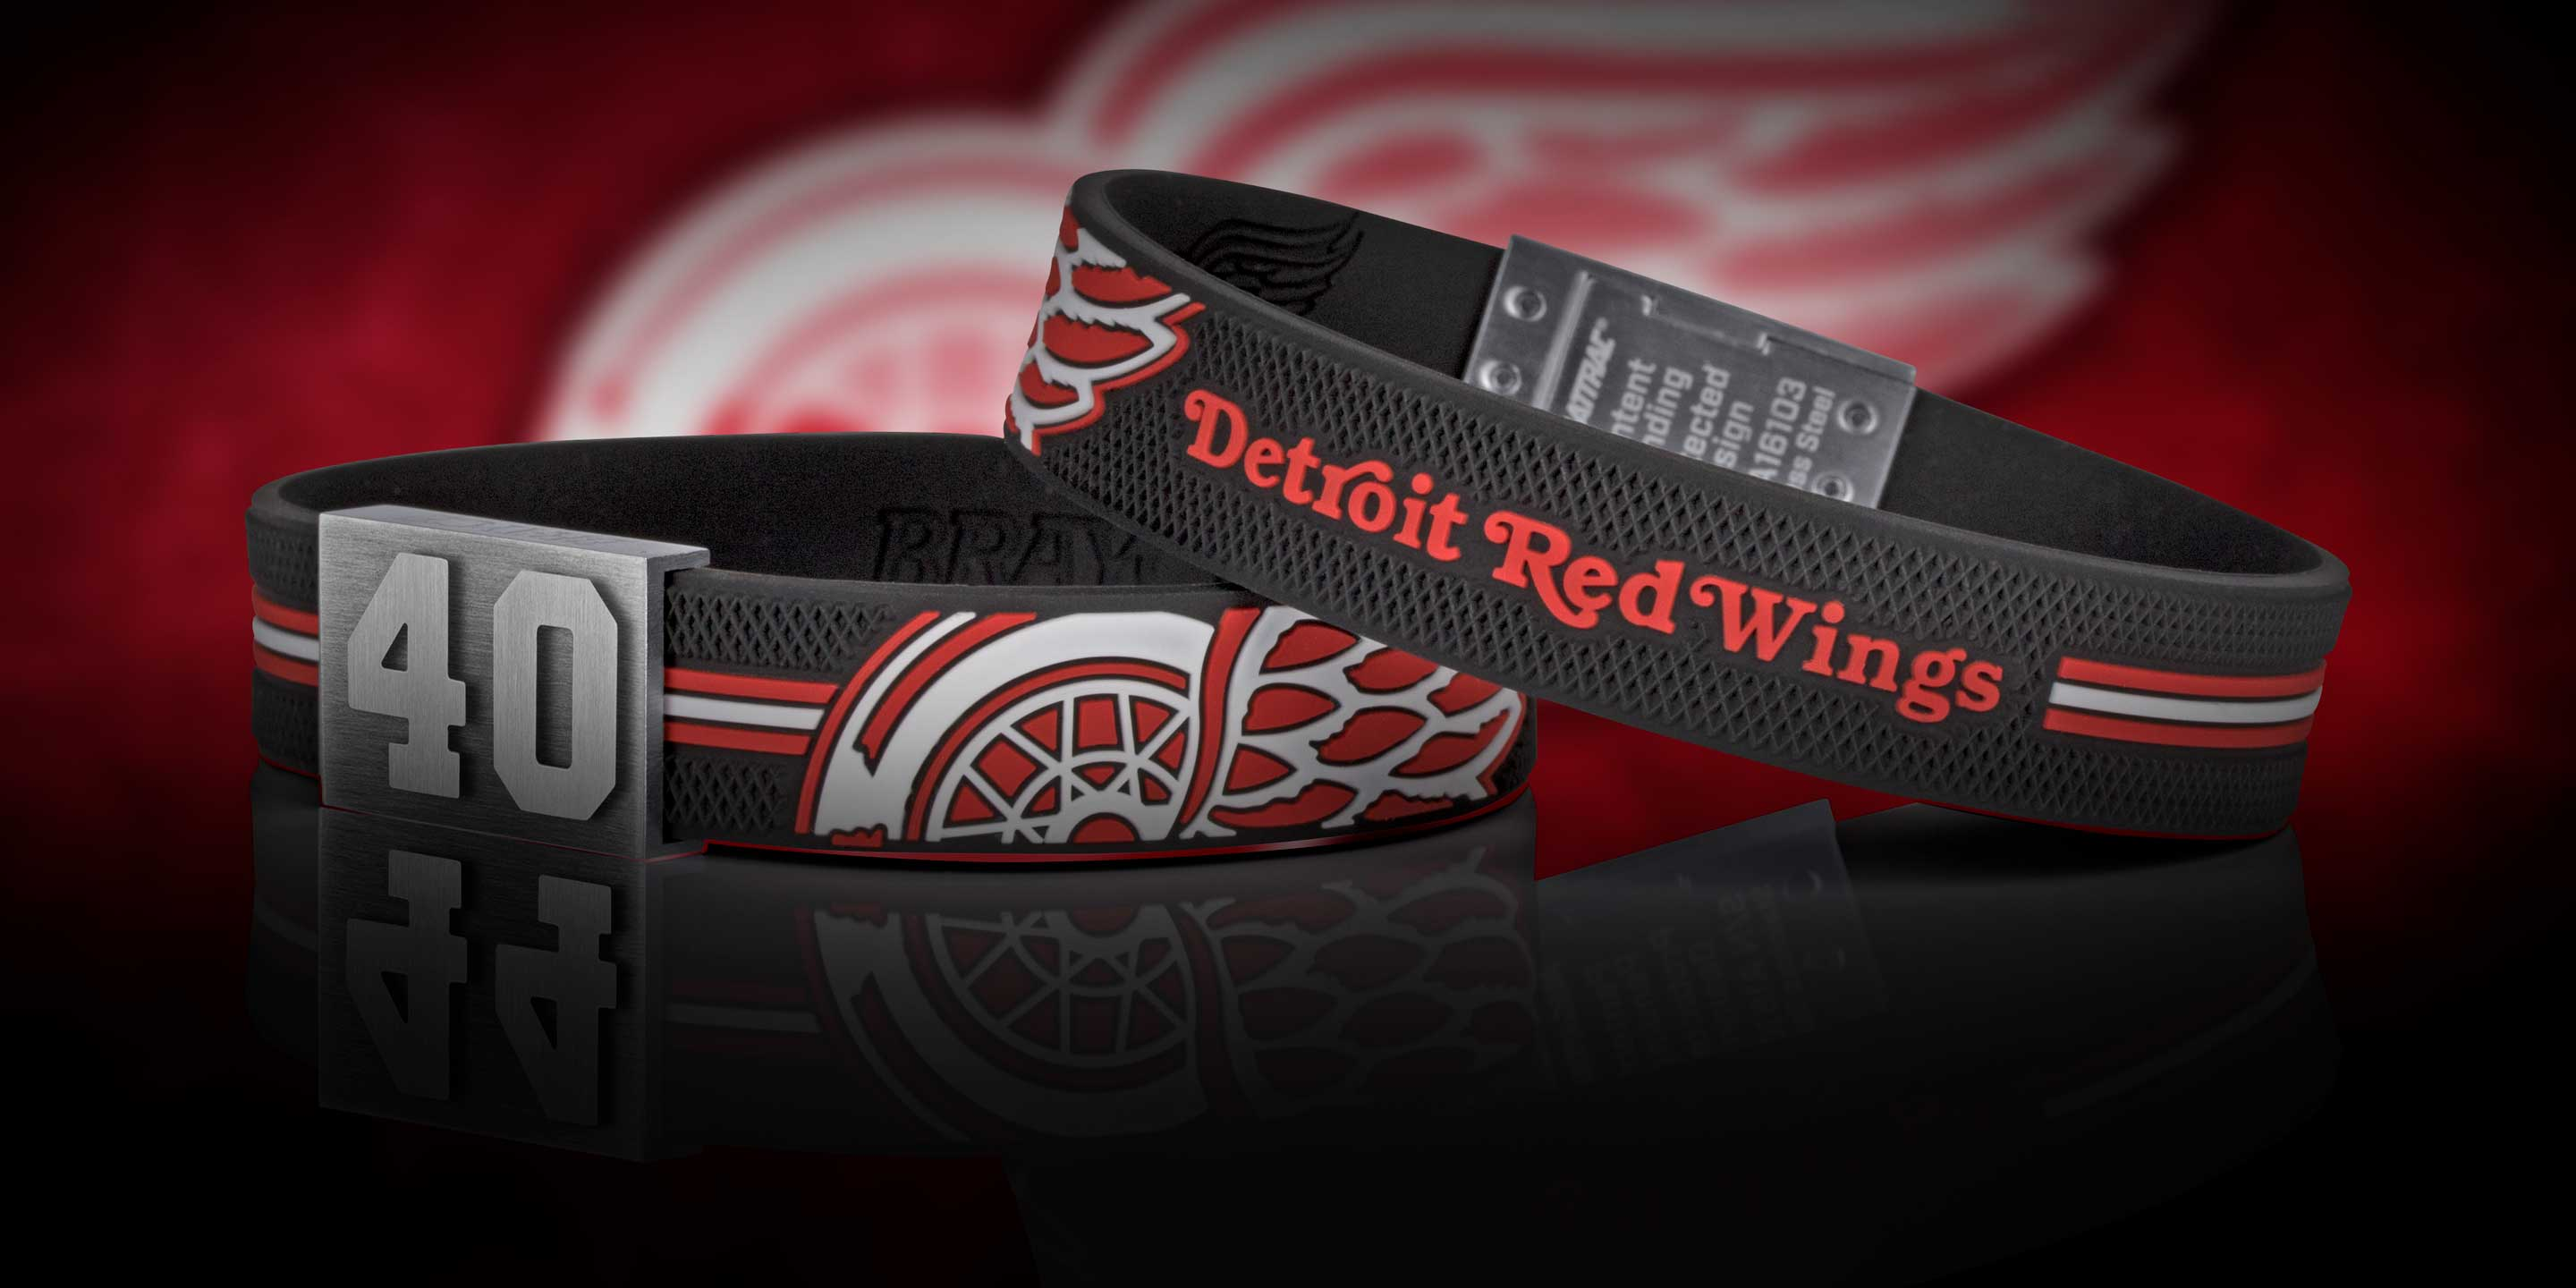 BRAYCE Detroit Red Wings Armband Nummer 40